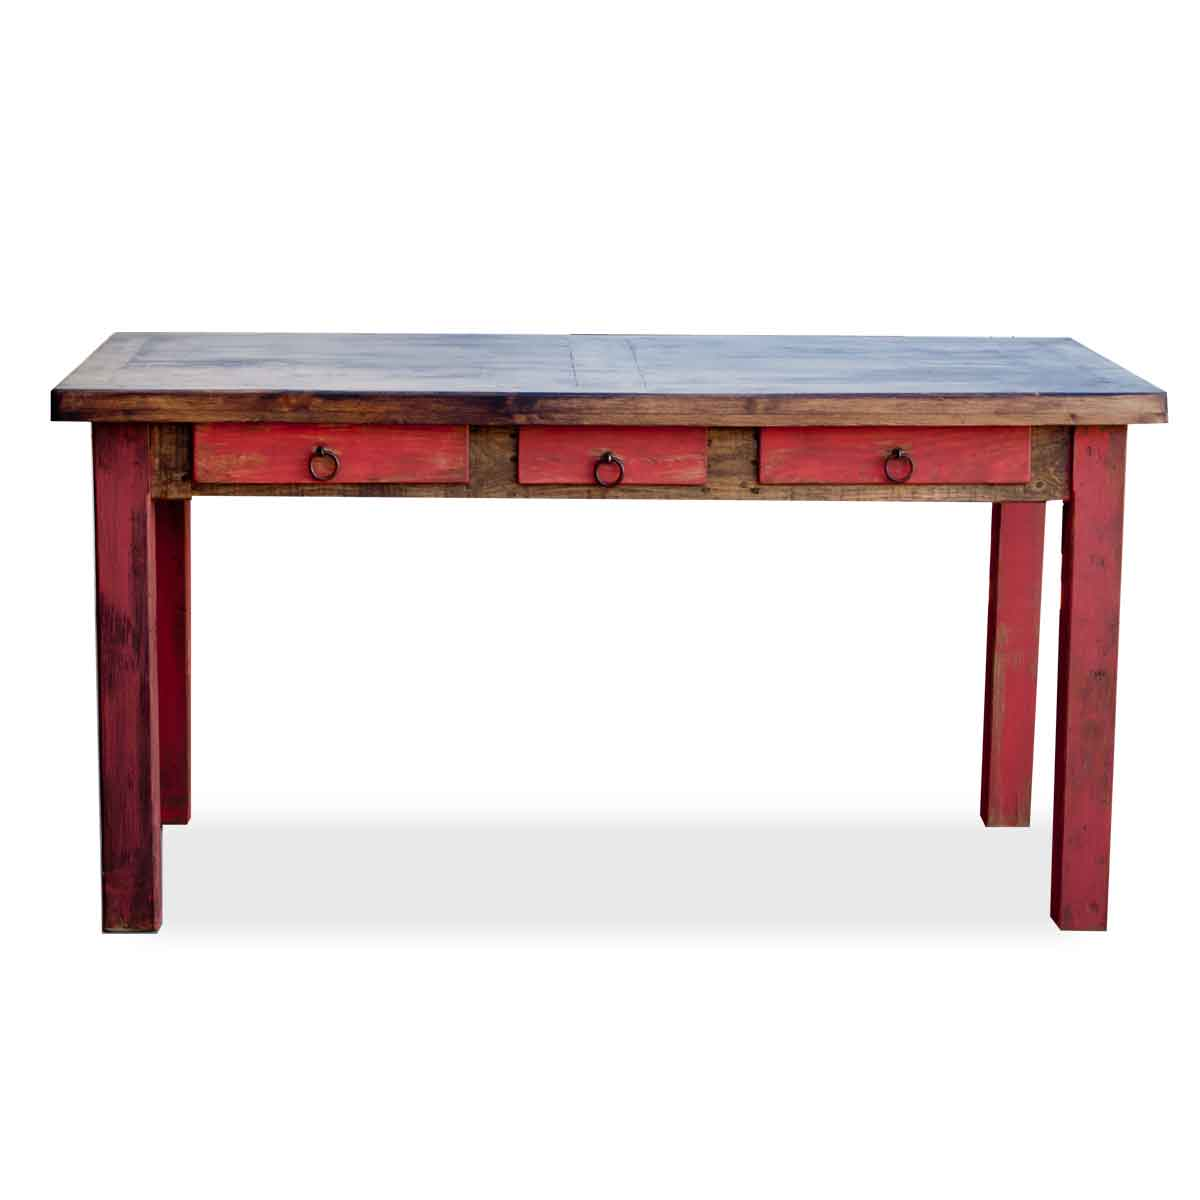 order beautiful red rustic desk with 3 drawers and wooden rails online